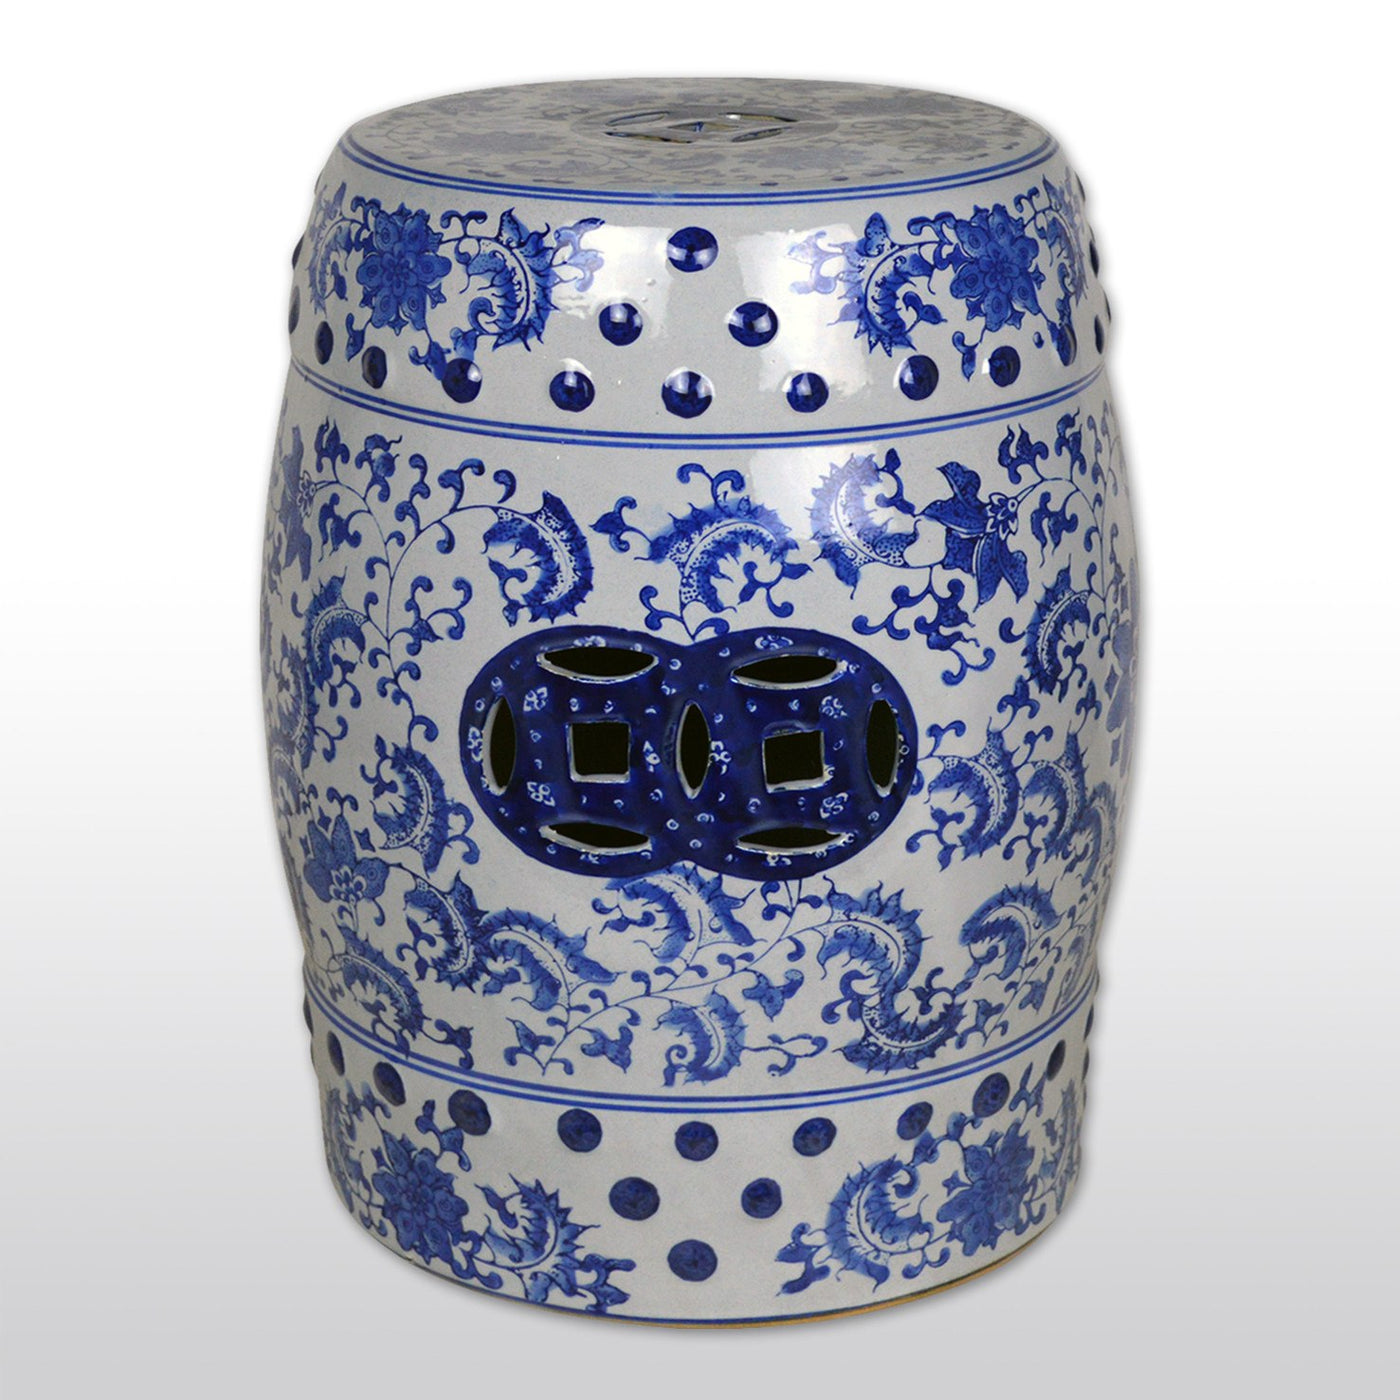 Astounding Oriental Ceramic Garden Stool 17 Featuring Weatherproof Design In Blue White Patio Furniture Caraccident5 Cool Chair Designs And Ideas Caraccident5Info